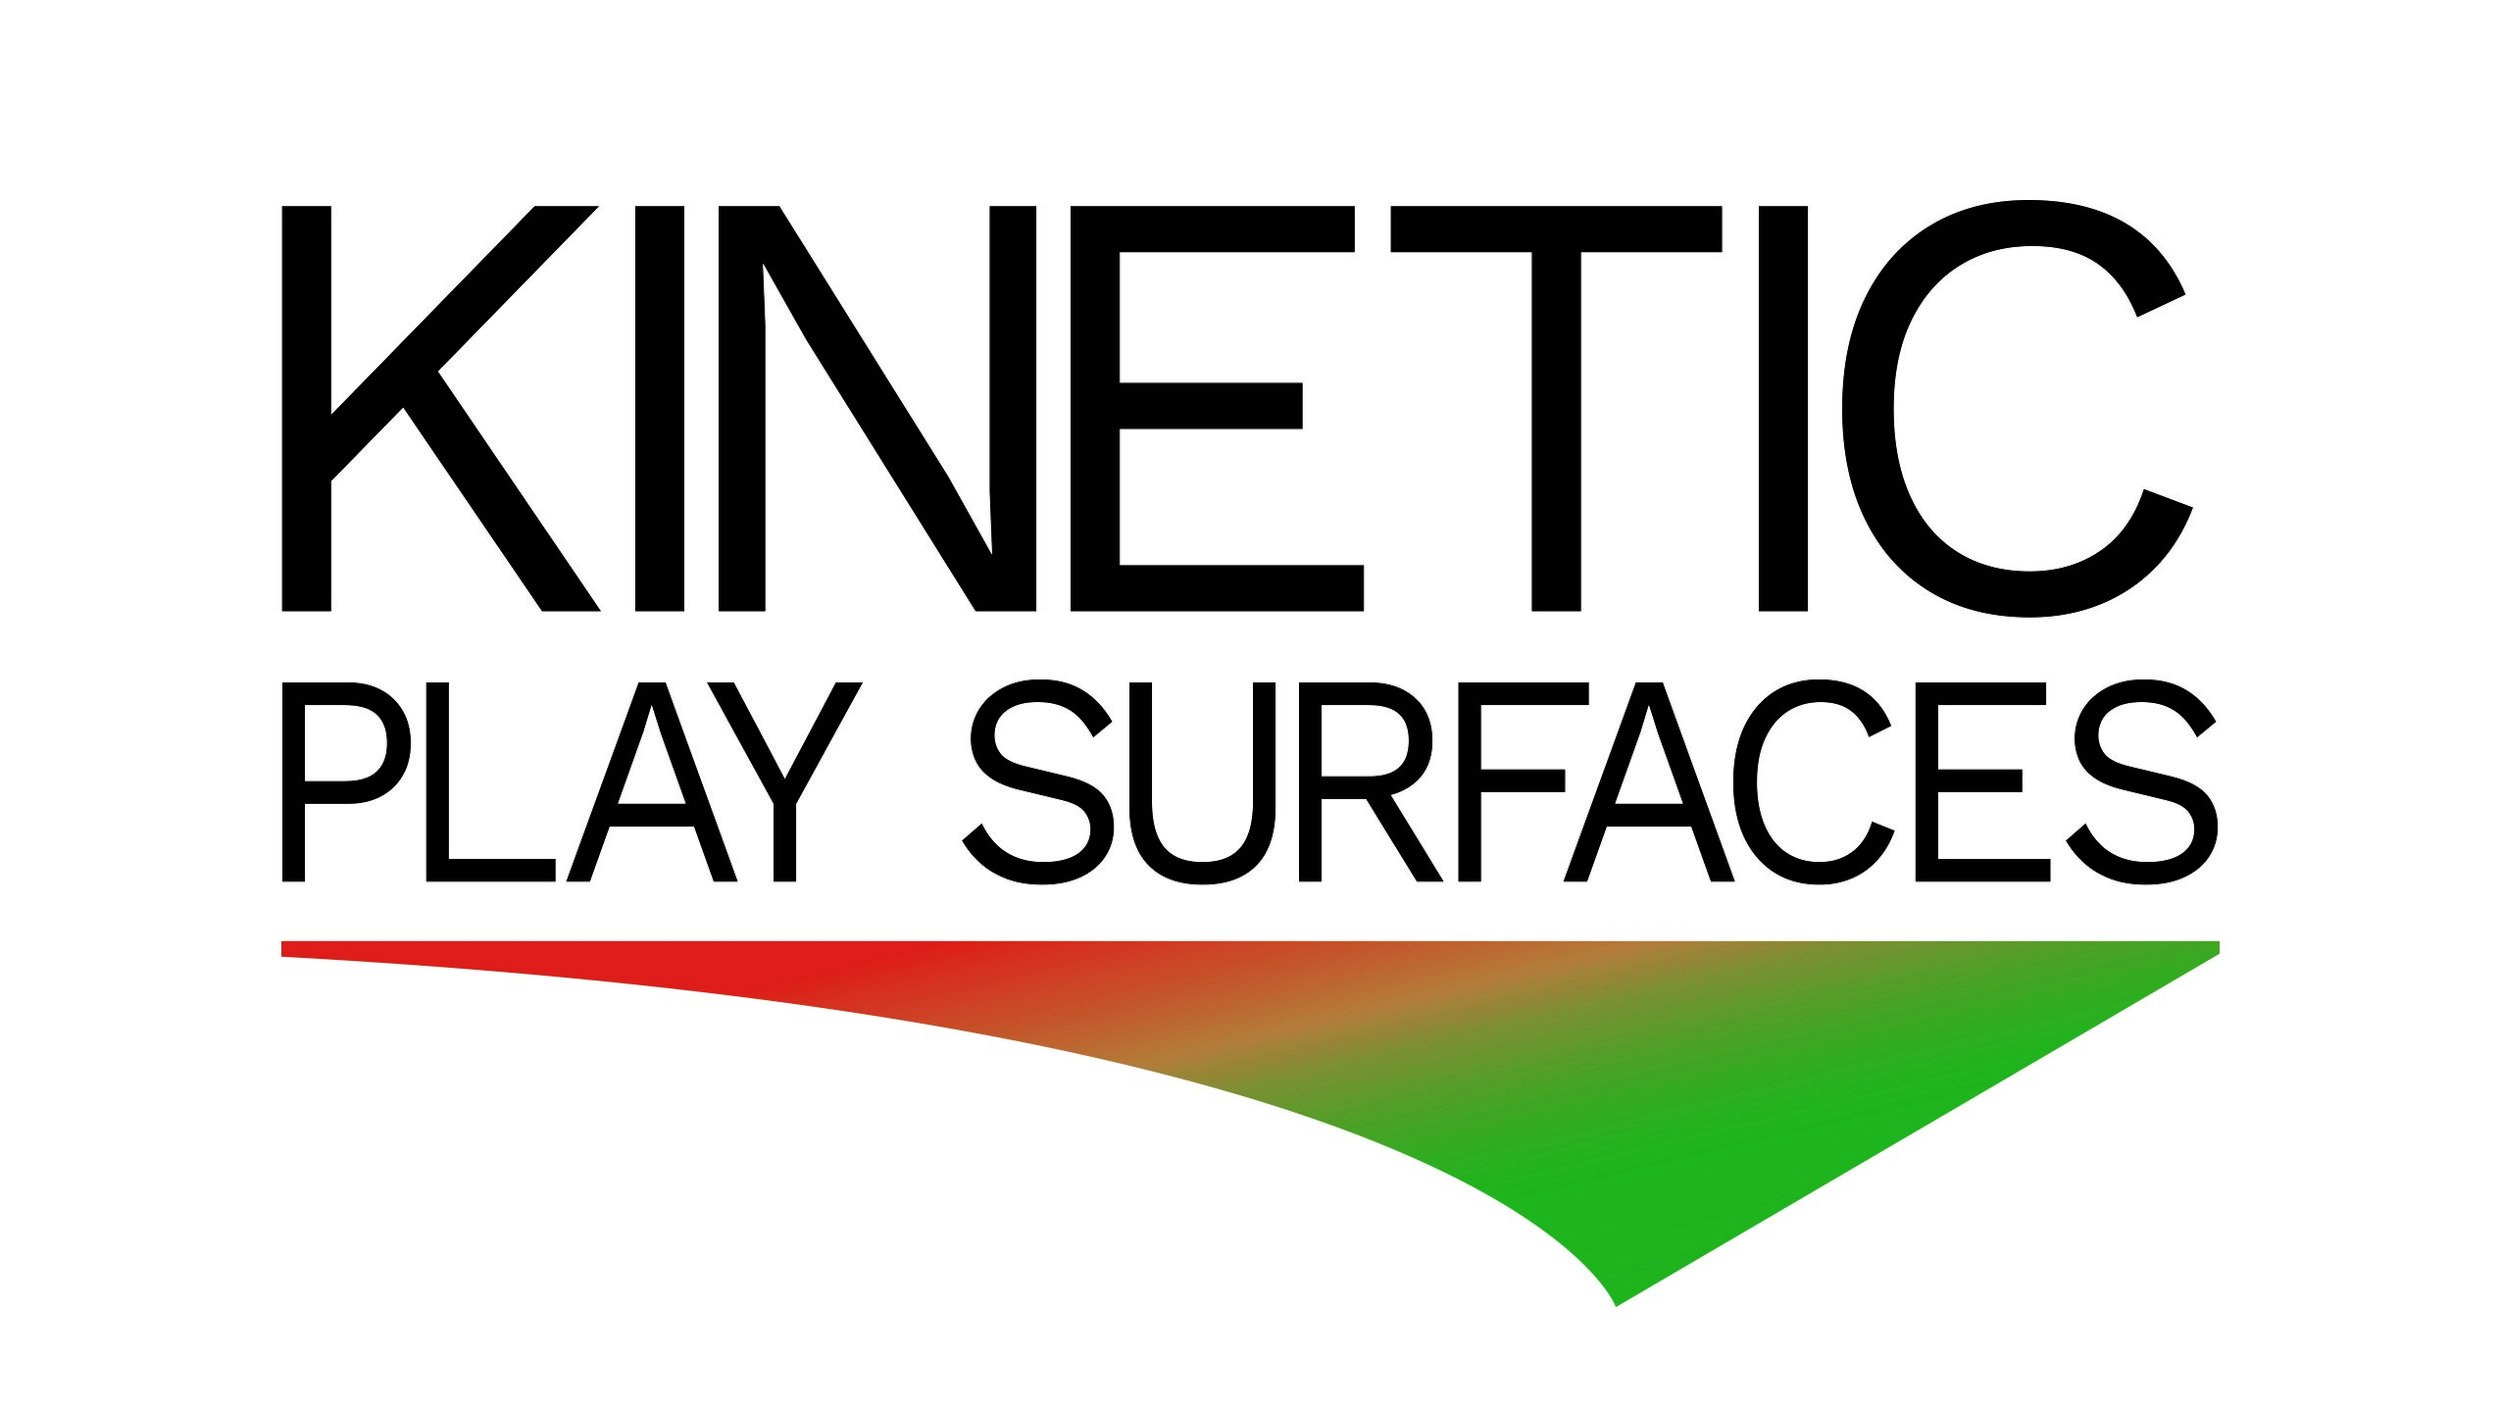 Kinetic_Play_Surface_CMYK edited.jpg